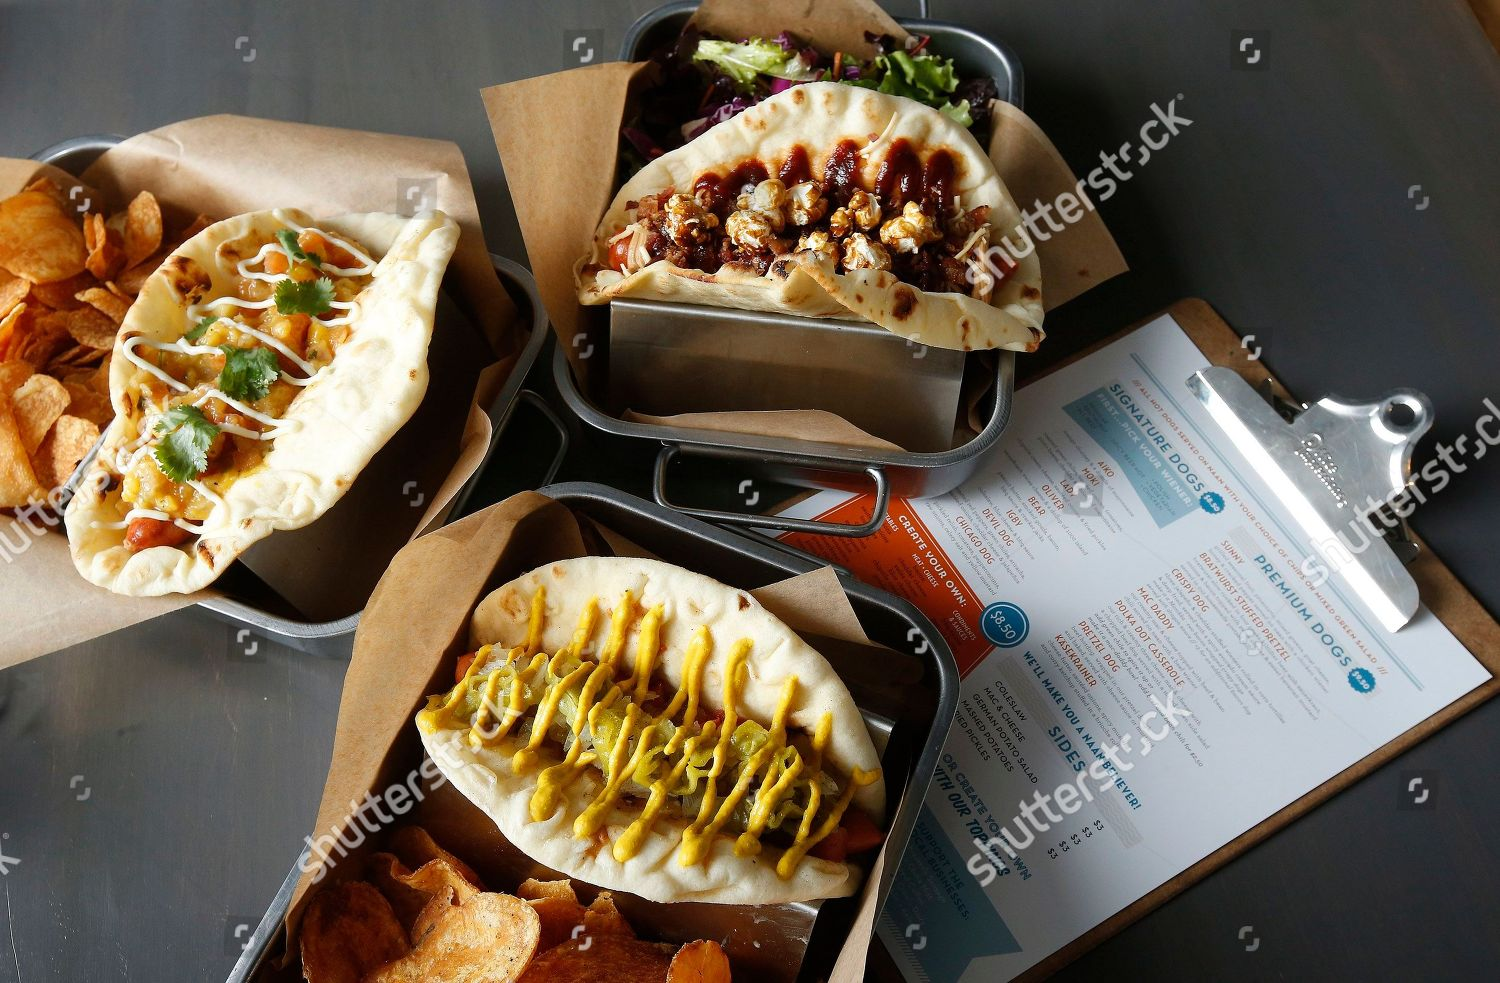 Three Hotdog Offerings Short Leash Restaurant Bear Editorial Stock